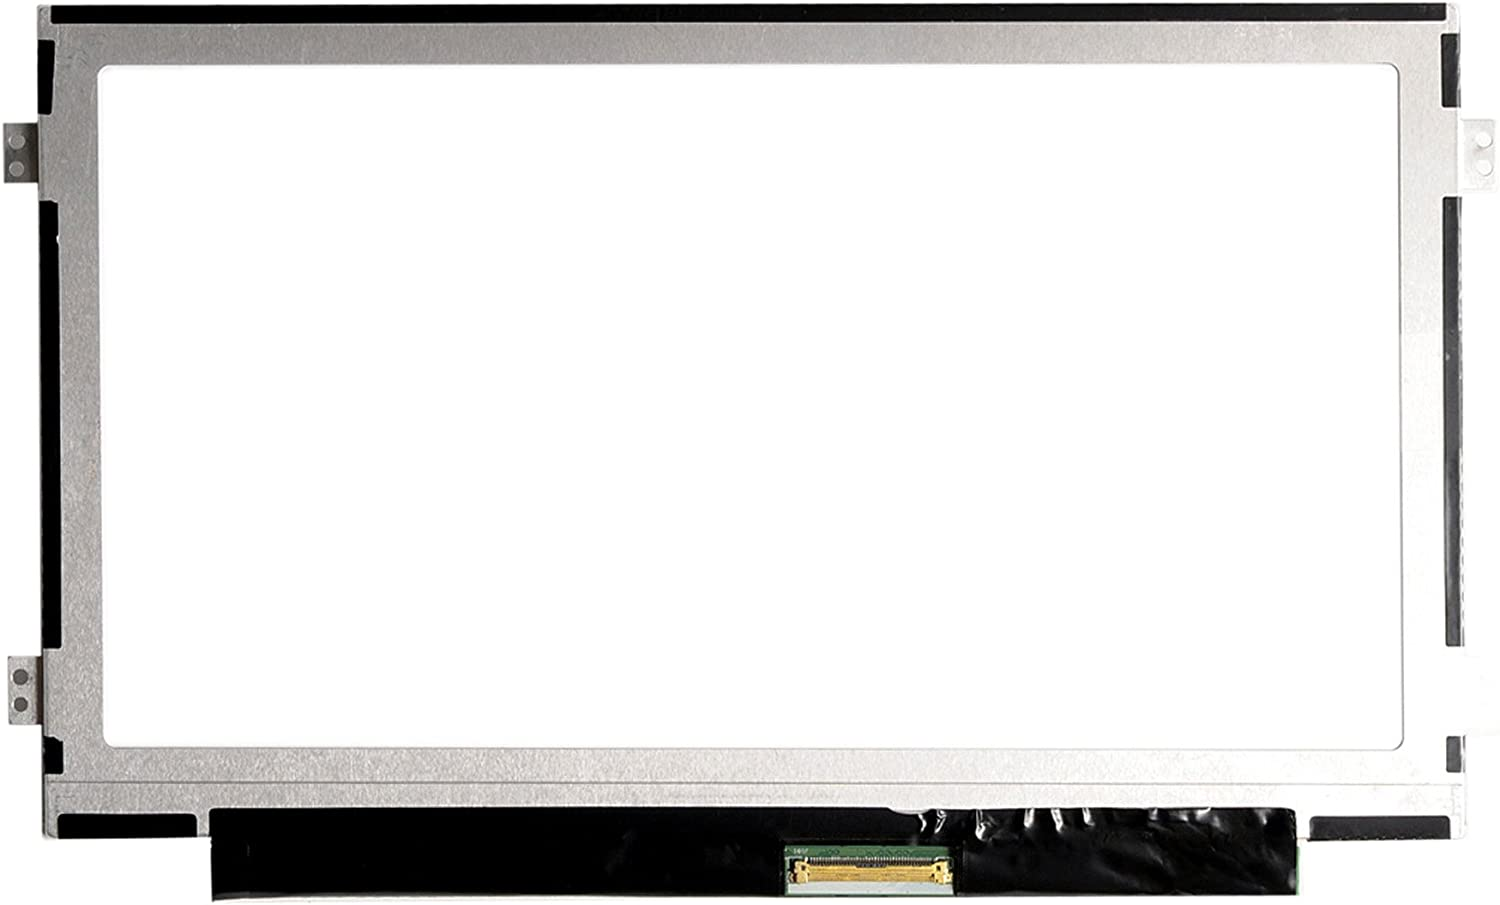 Acer Aspire One D255-2256 Replacement Max 59% OFF LCD WS Year-end annual account LAPTOP Screen 10.1